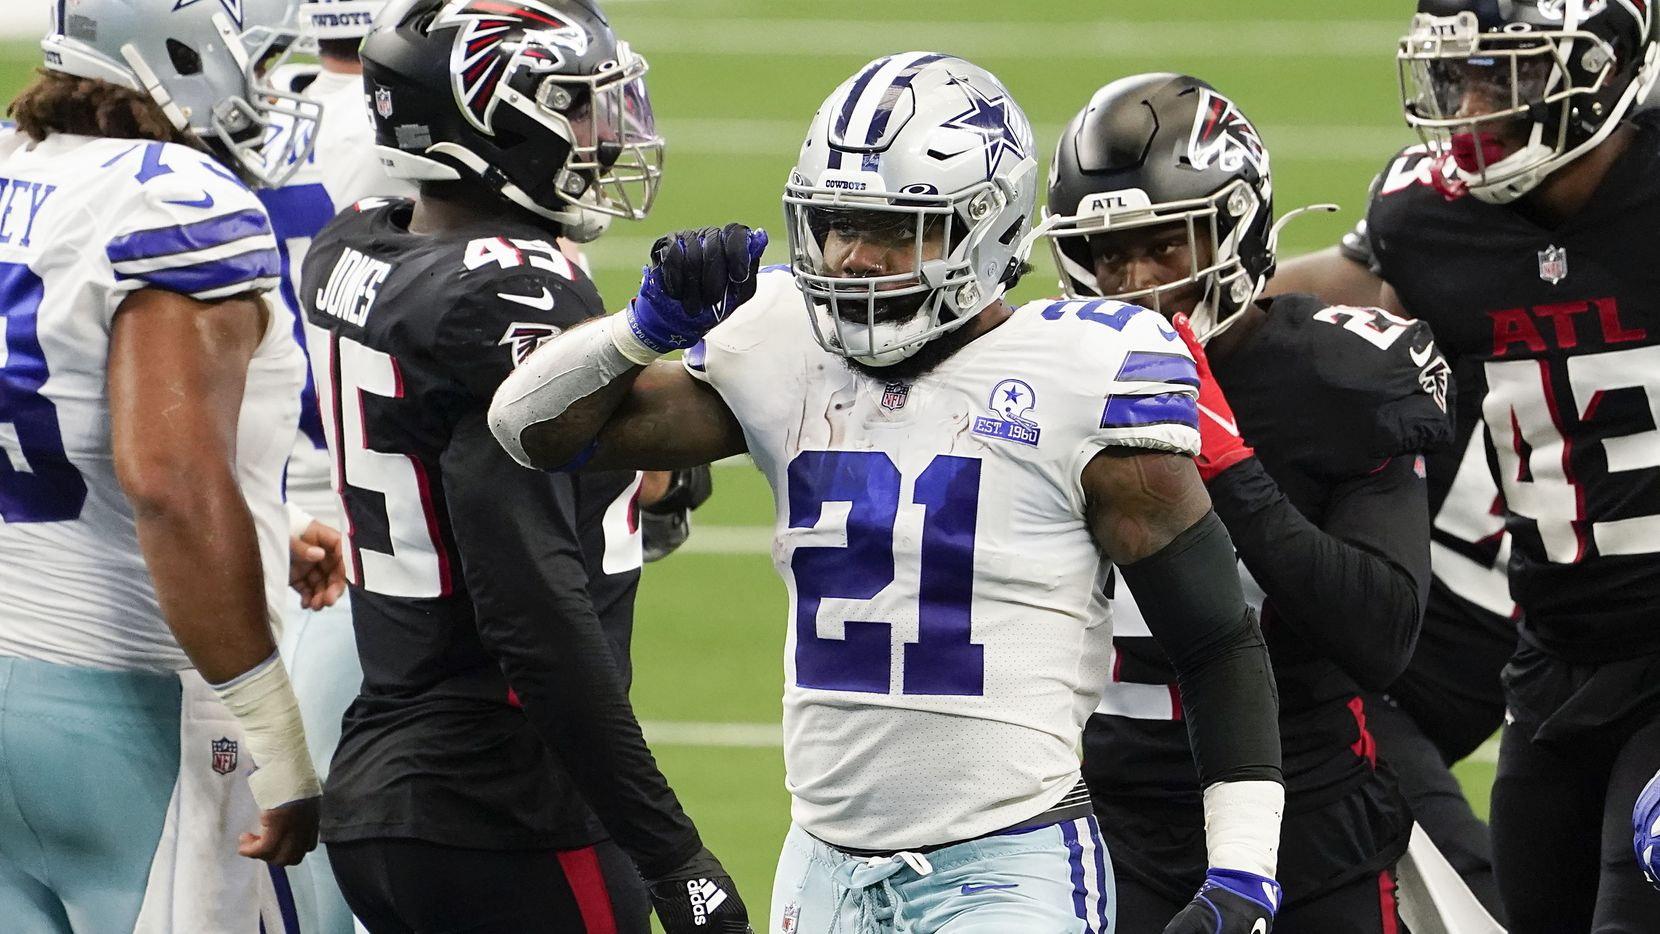 Dallas Cowboys running back Ezekiel Elliott celebrates after picking up a first down during the second quarter of an NFL football game against the Atlanta Falcons at AT&T Stadium on Sunday, Sept. 20, 2020, in Arlington.